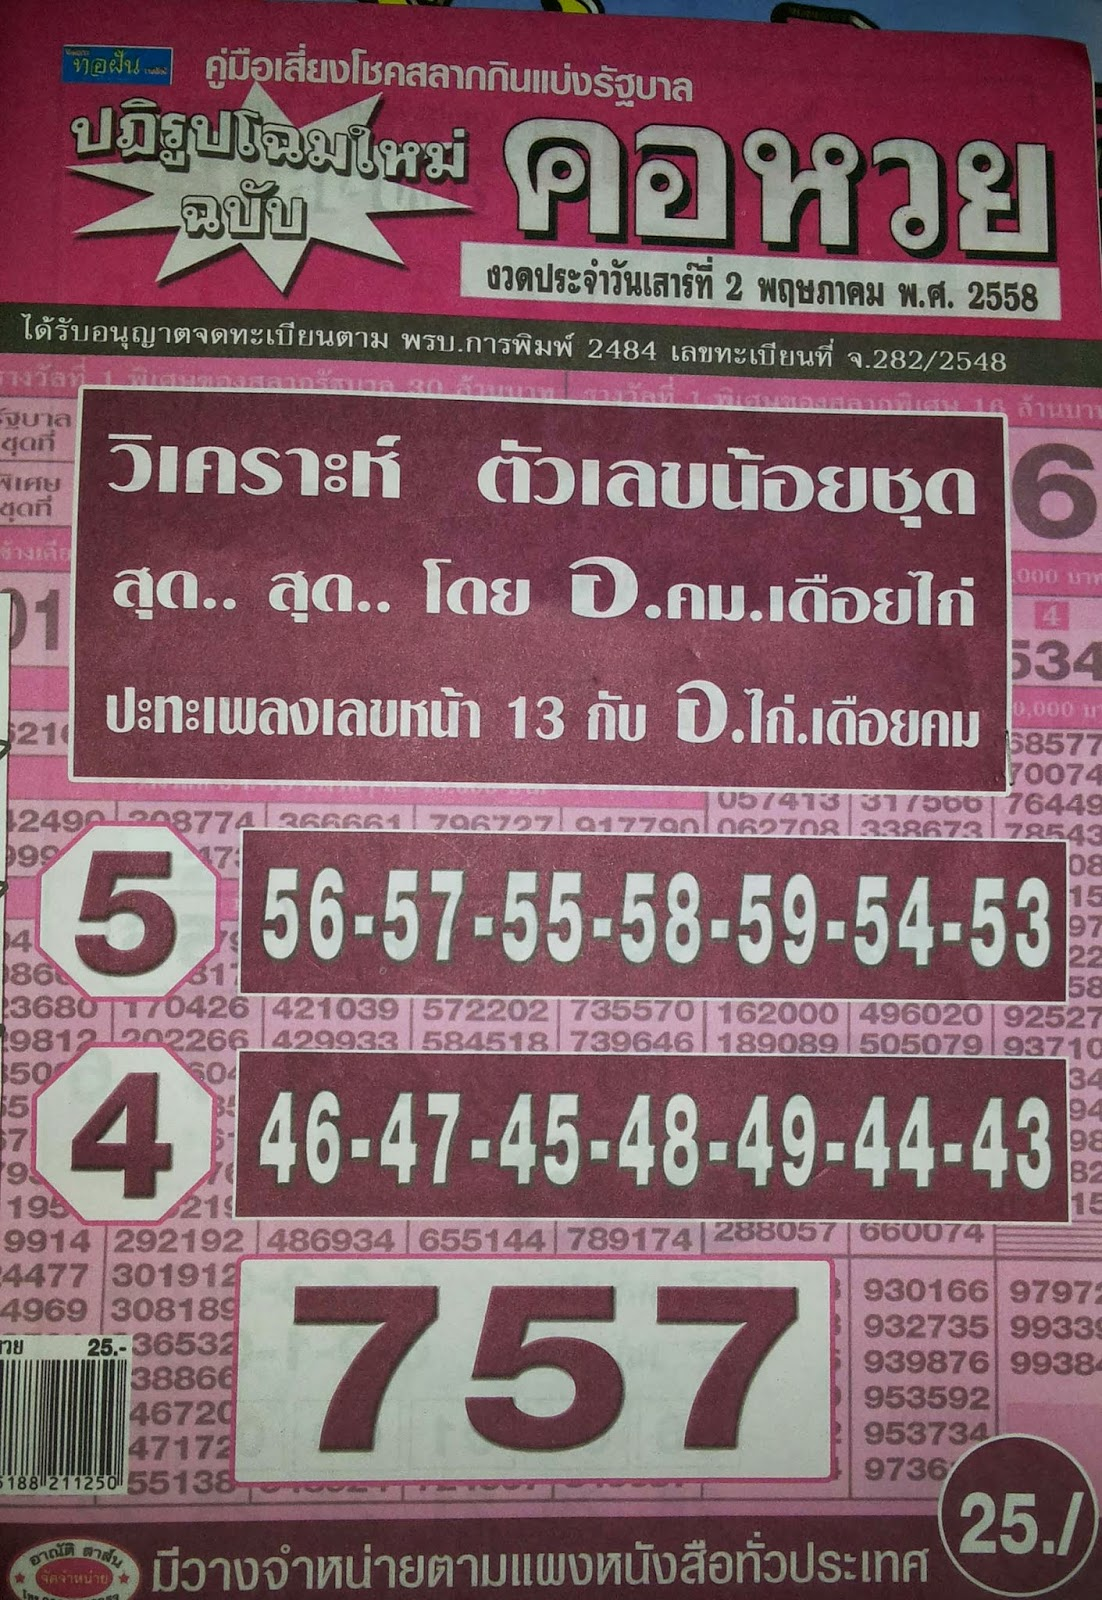 2.5.2015 All About Thai Lotto Tips - Page 7 20150420_200355